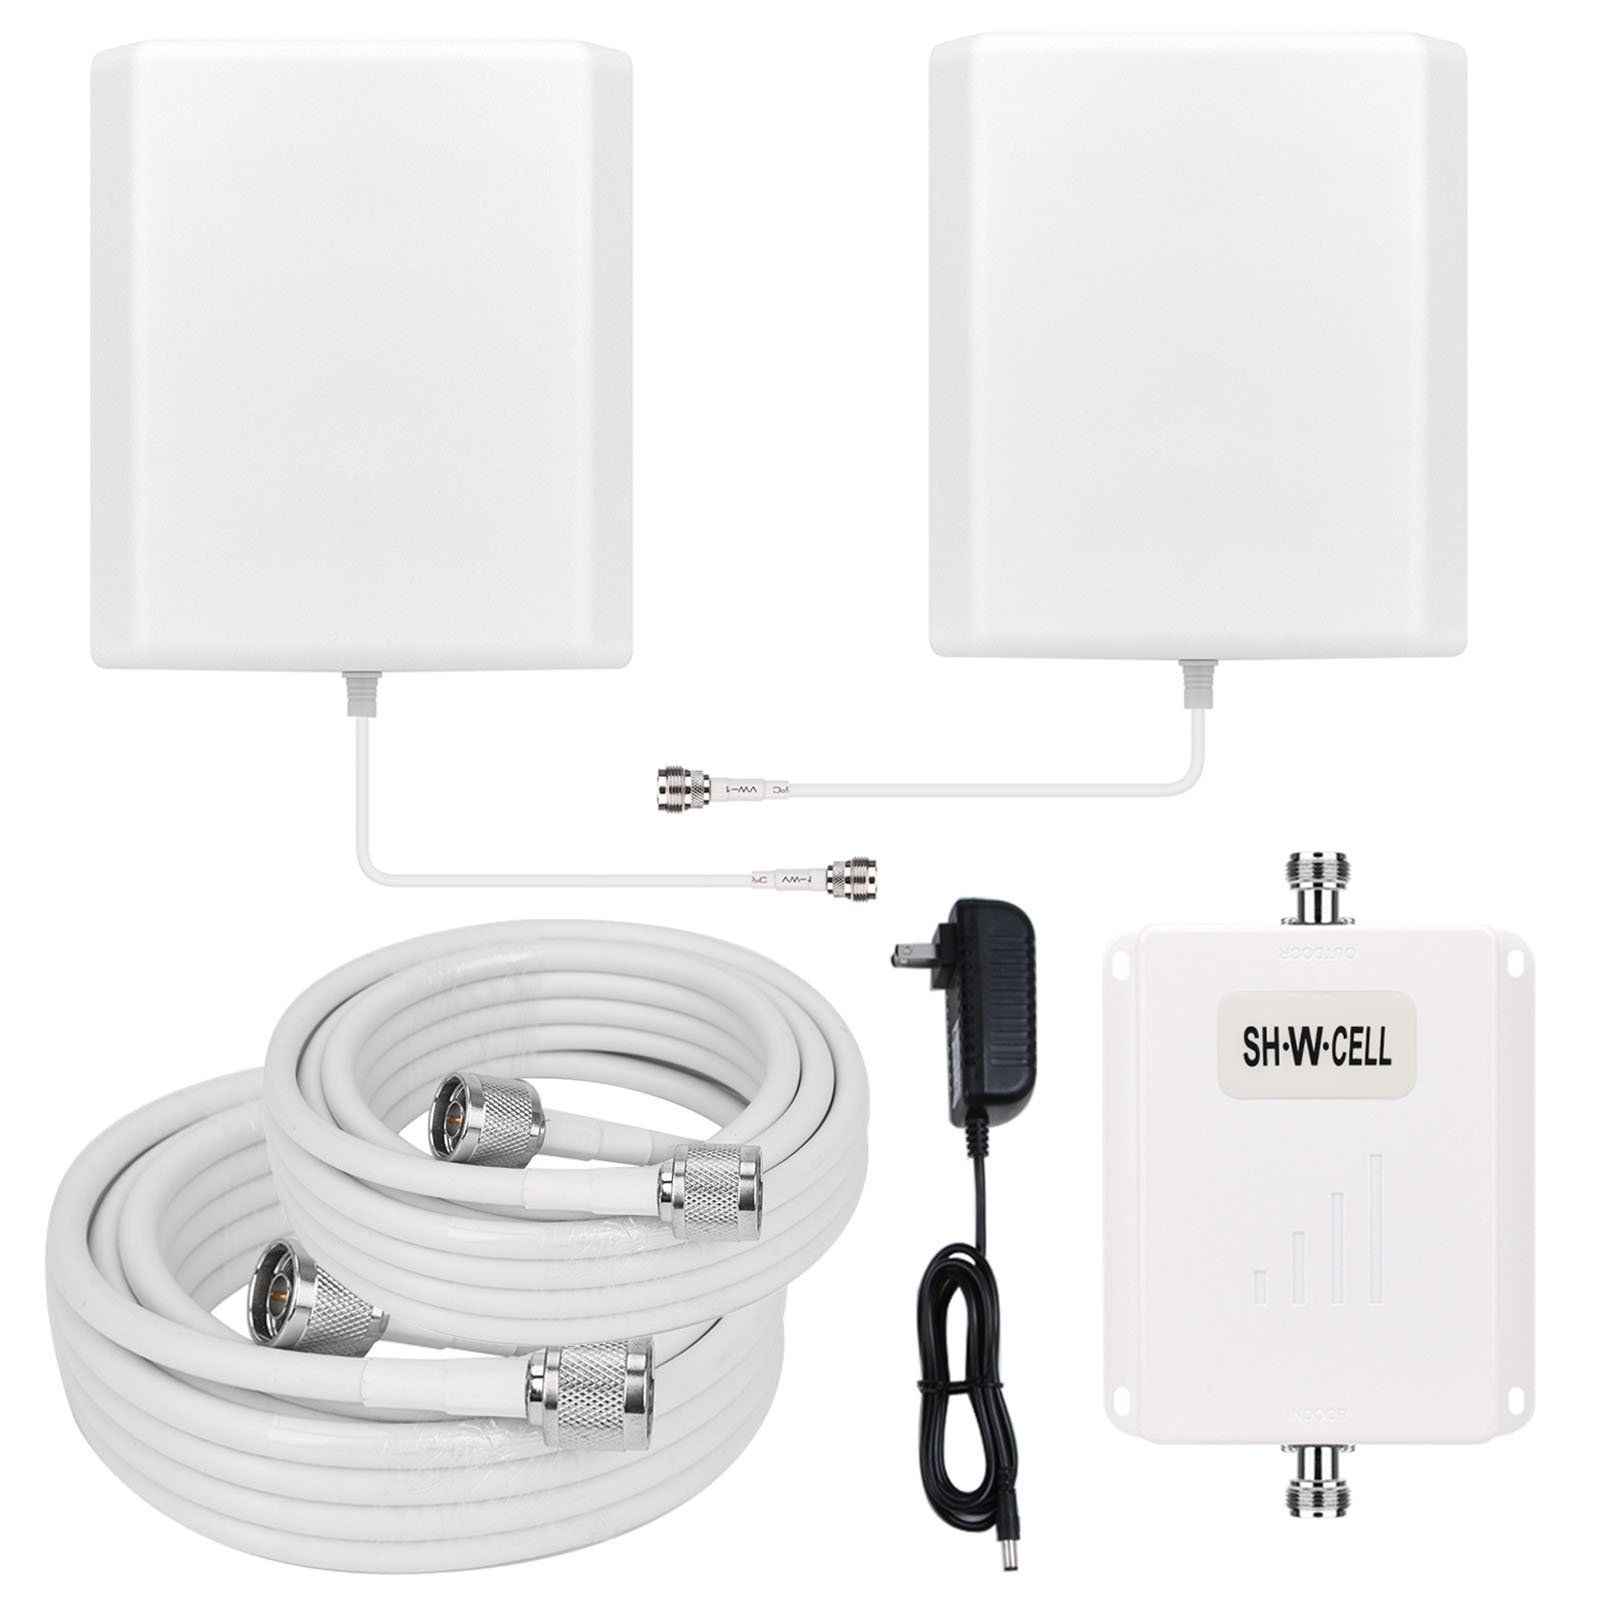 Band13 700MHZ Verizon 4G LTE Cell Phone Signal Booster High Gain Mobile Repeater Amplifier SHWCELL Including Dual Panel Antennas For home use